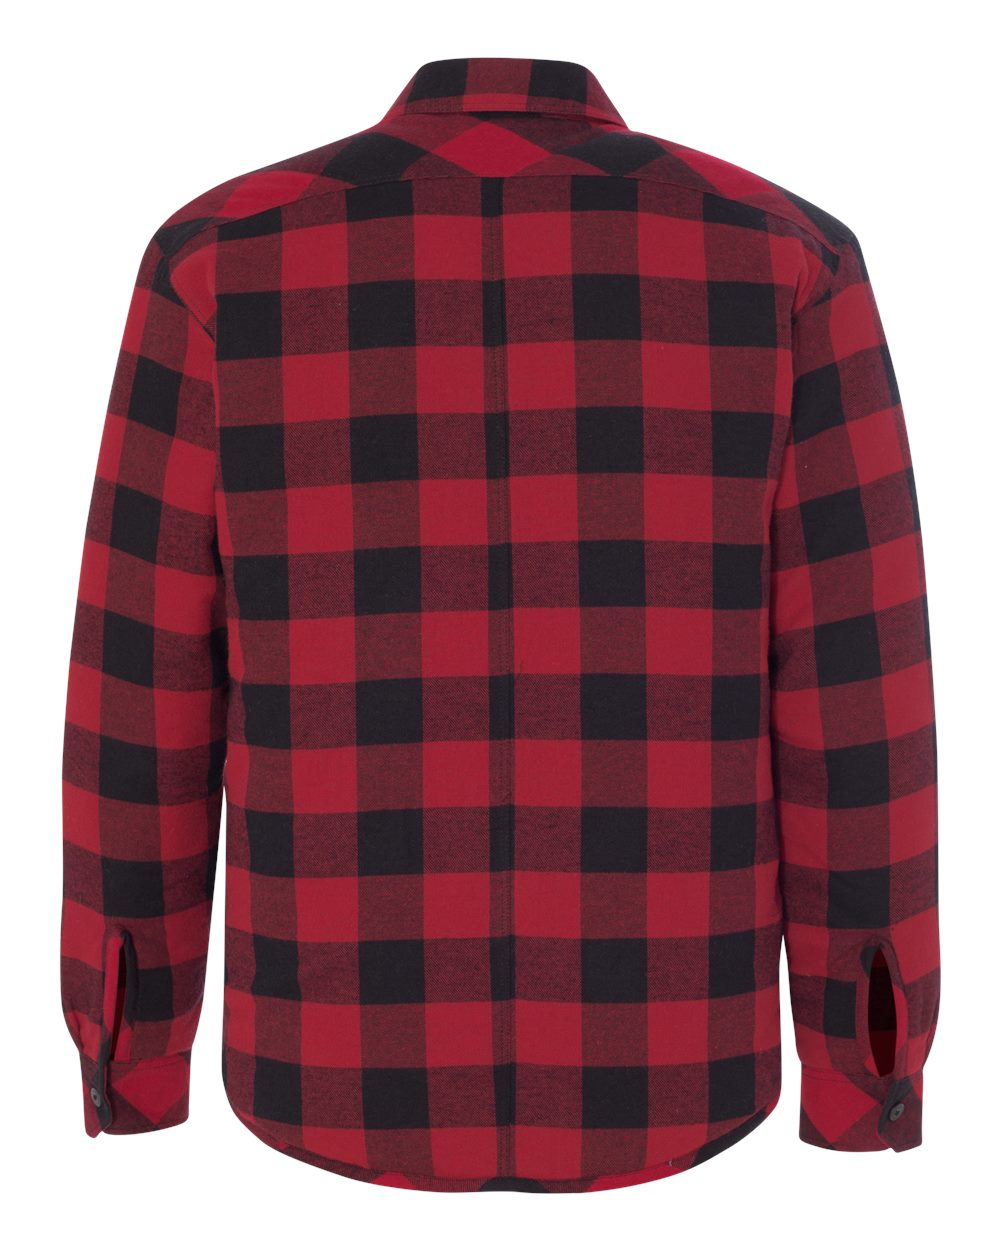 Burnside-Mens-Quilted-Flannel-Jacket-Shirt-8610-up-to-3XL thumbnail 10